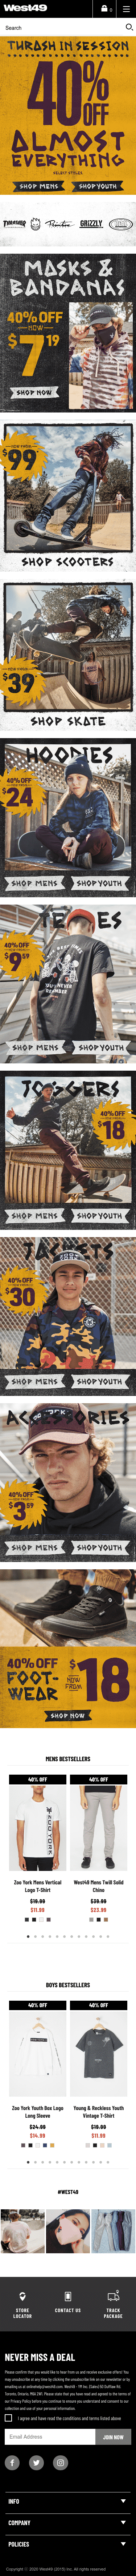 West 49 Coupon